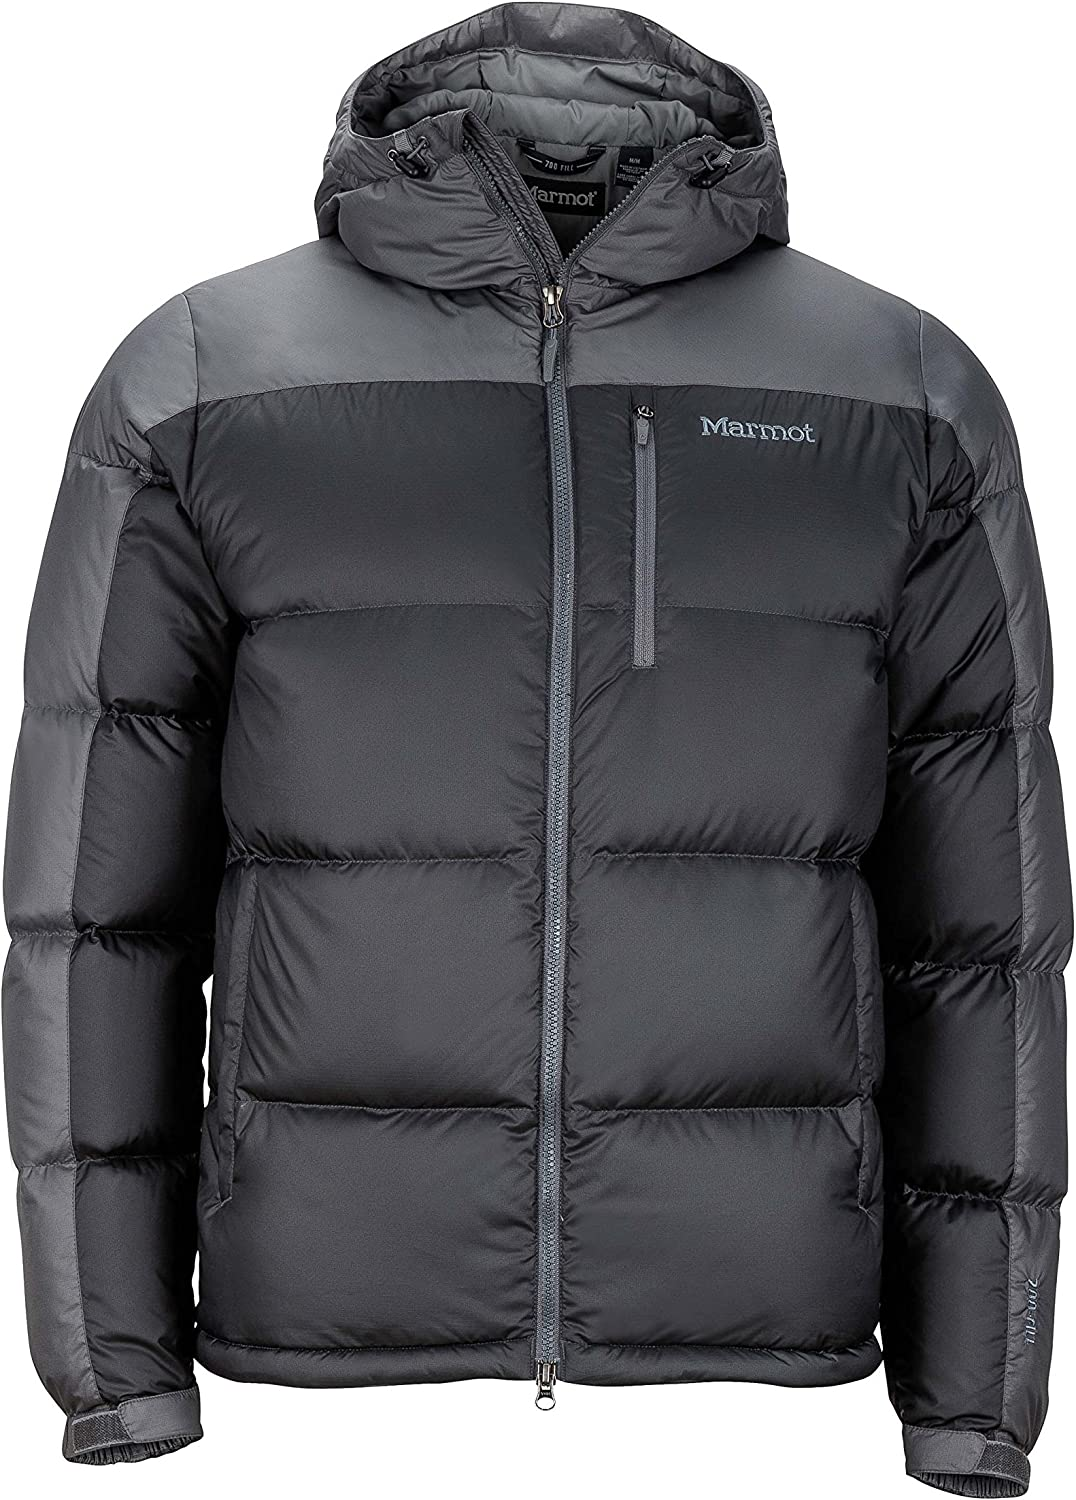 Marmot Men's Guides Down Hoody Winter Puffer Jacket, Fill Power 700